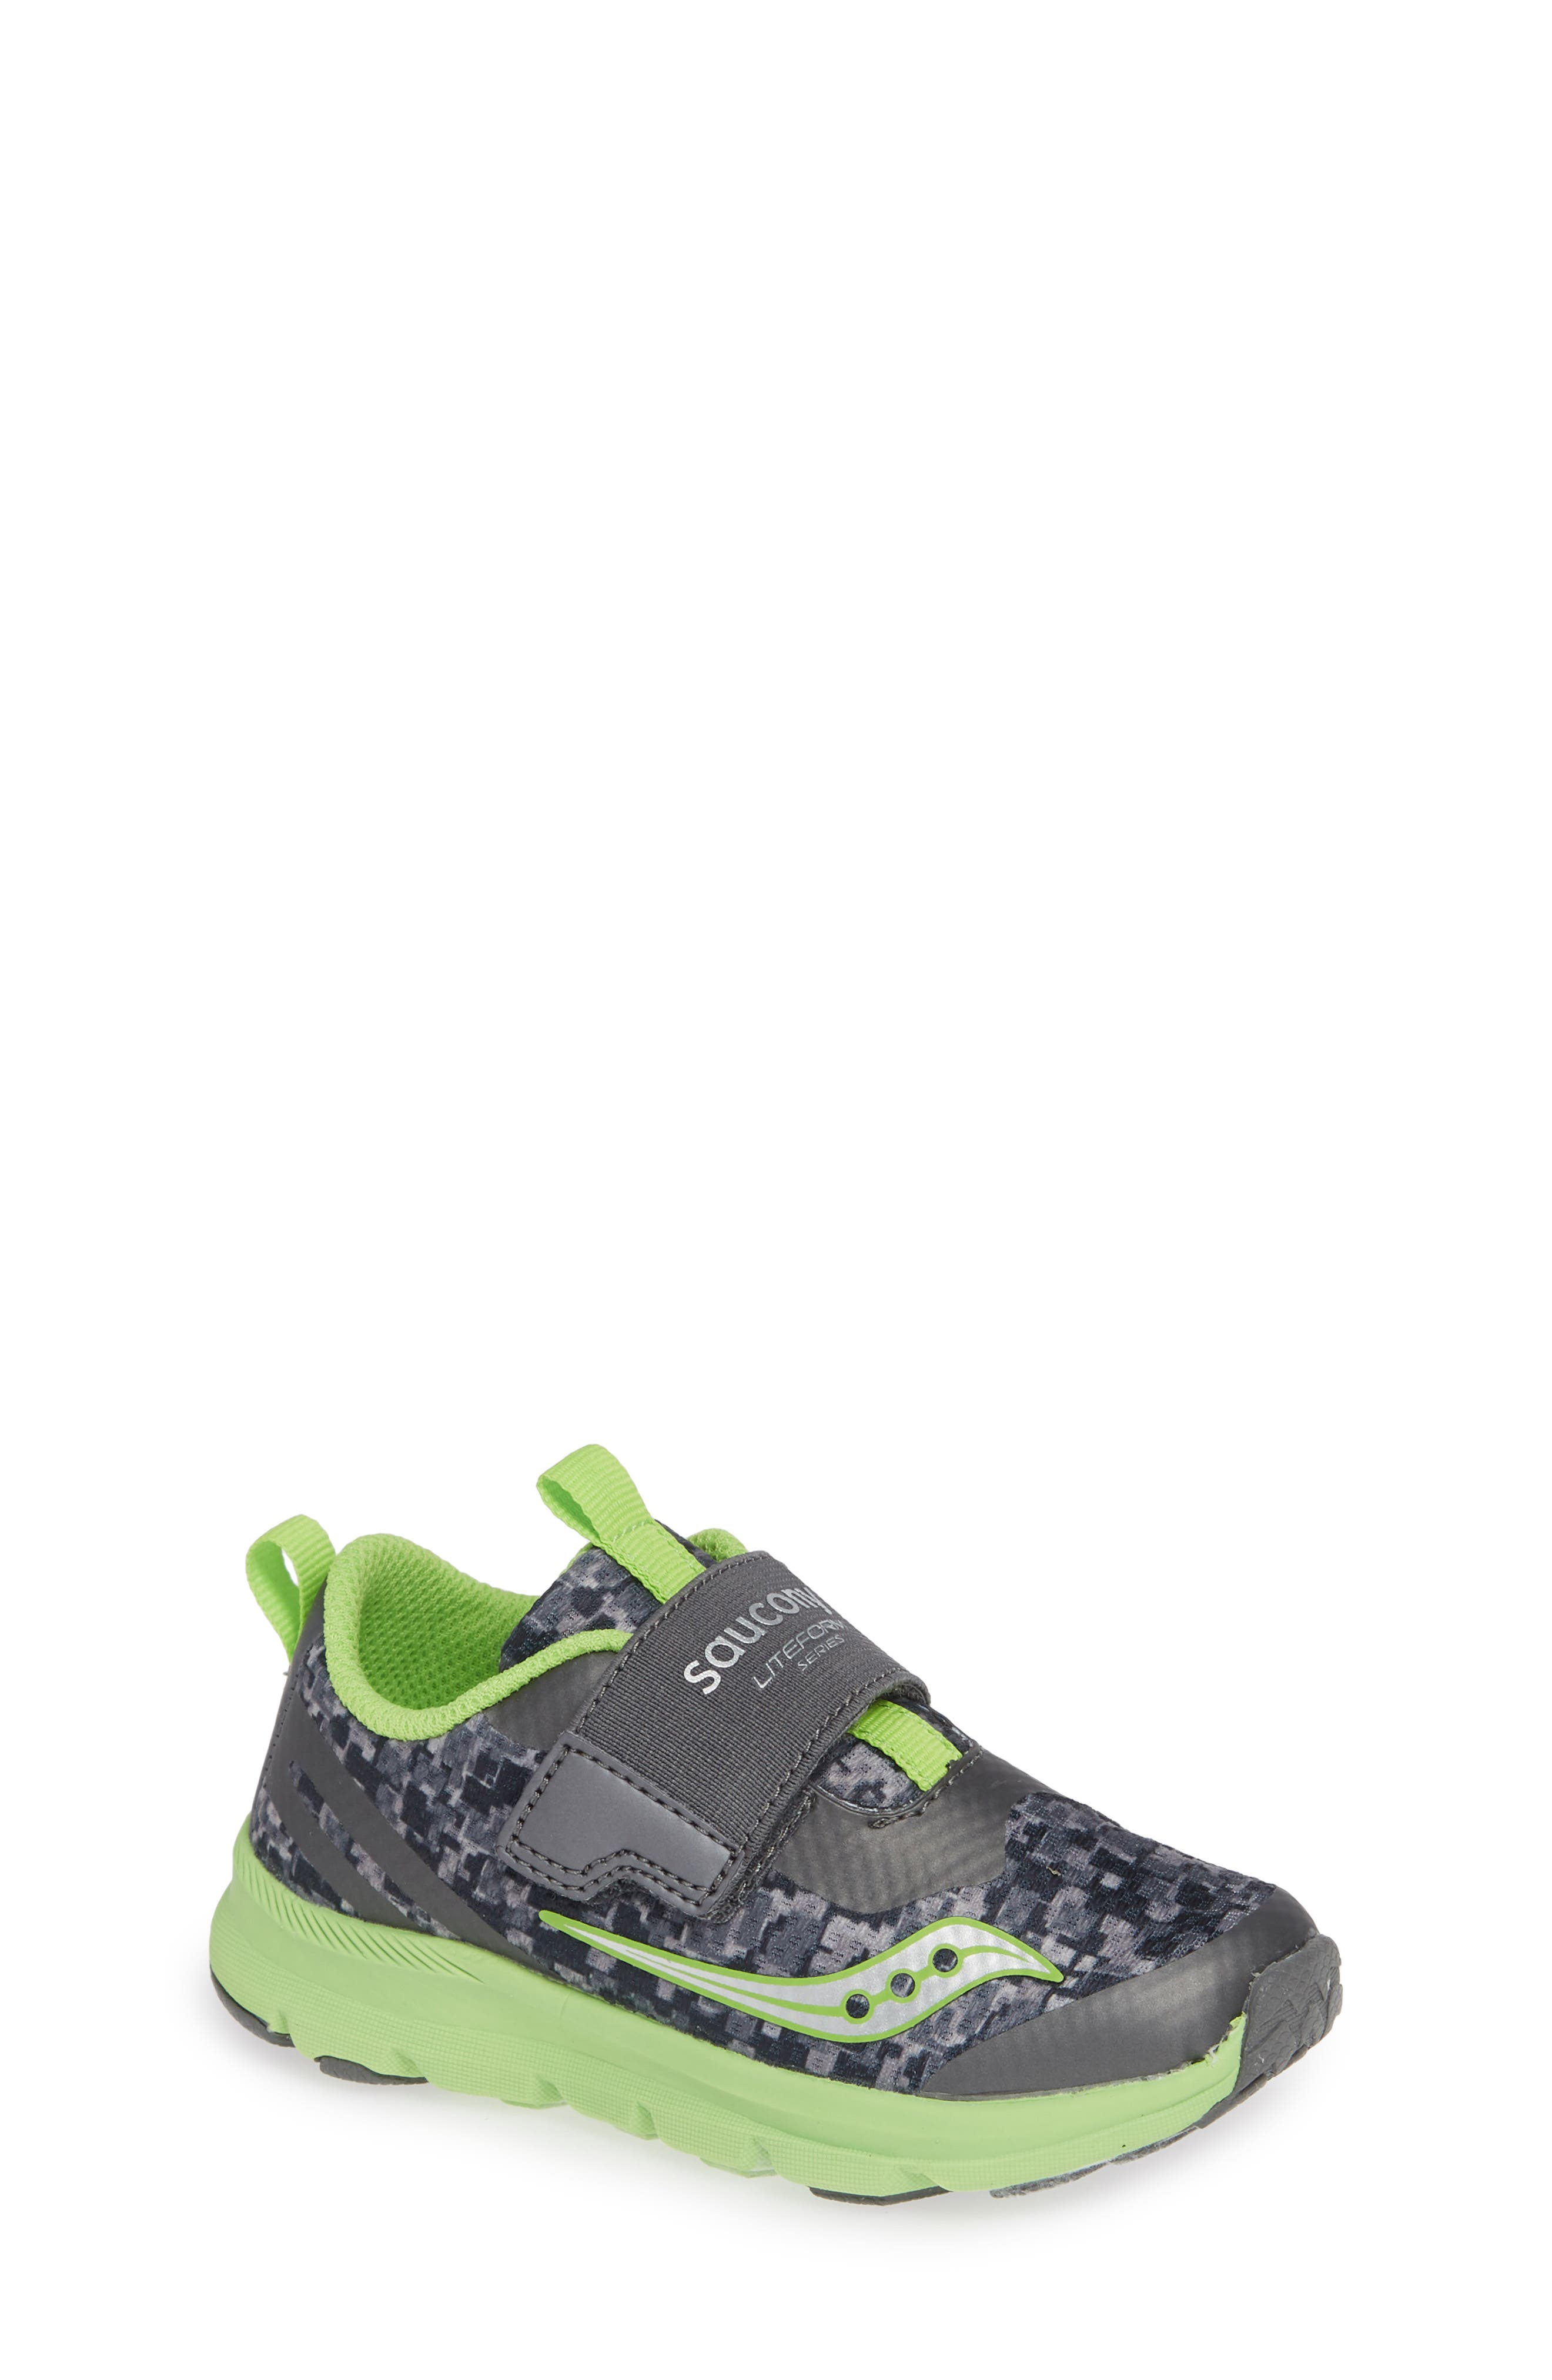 Baby Liteform Sneaker,                             Main thumbnail 1, color,                             GREY/ GREEN